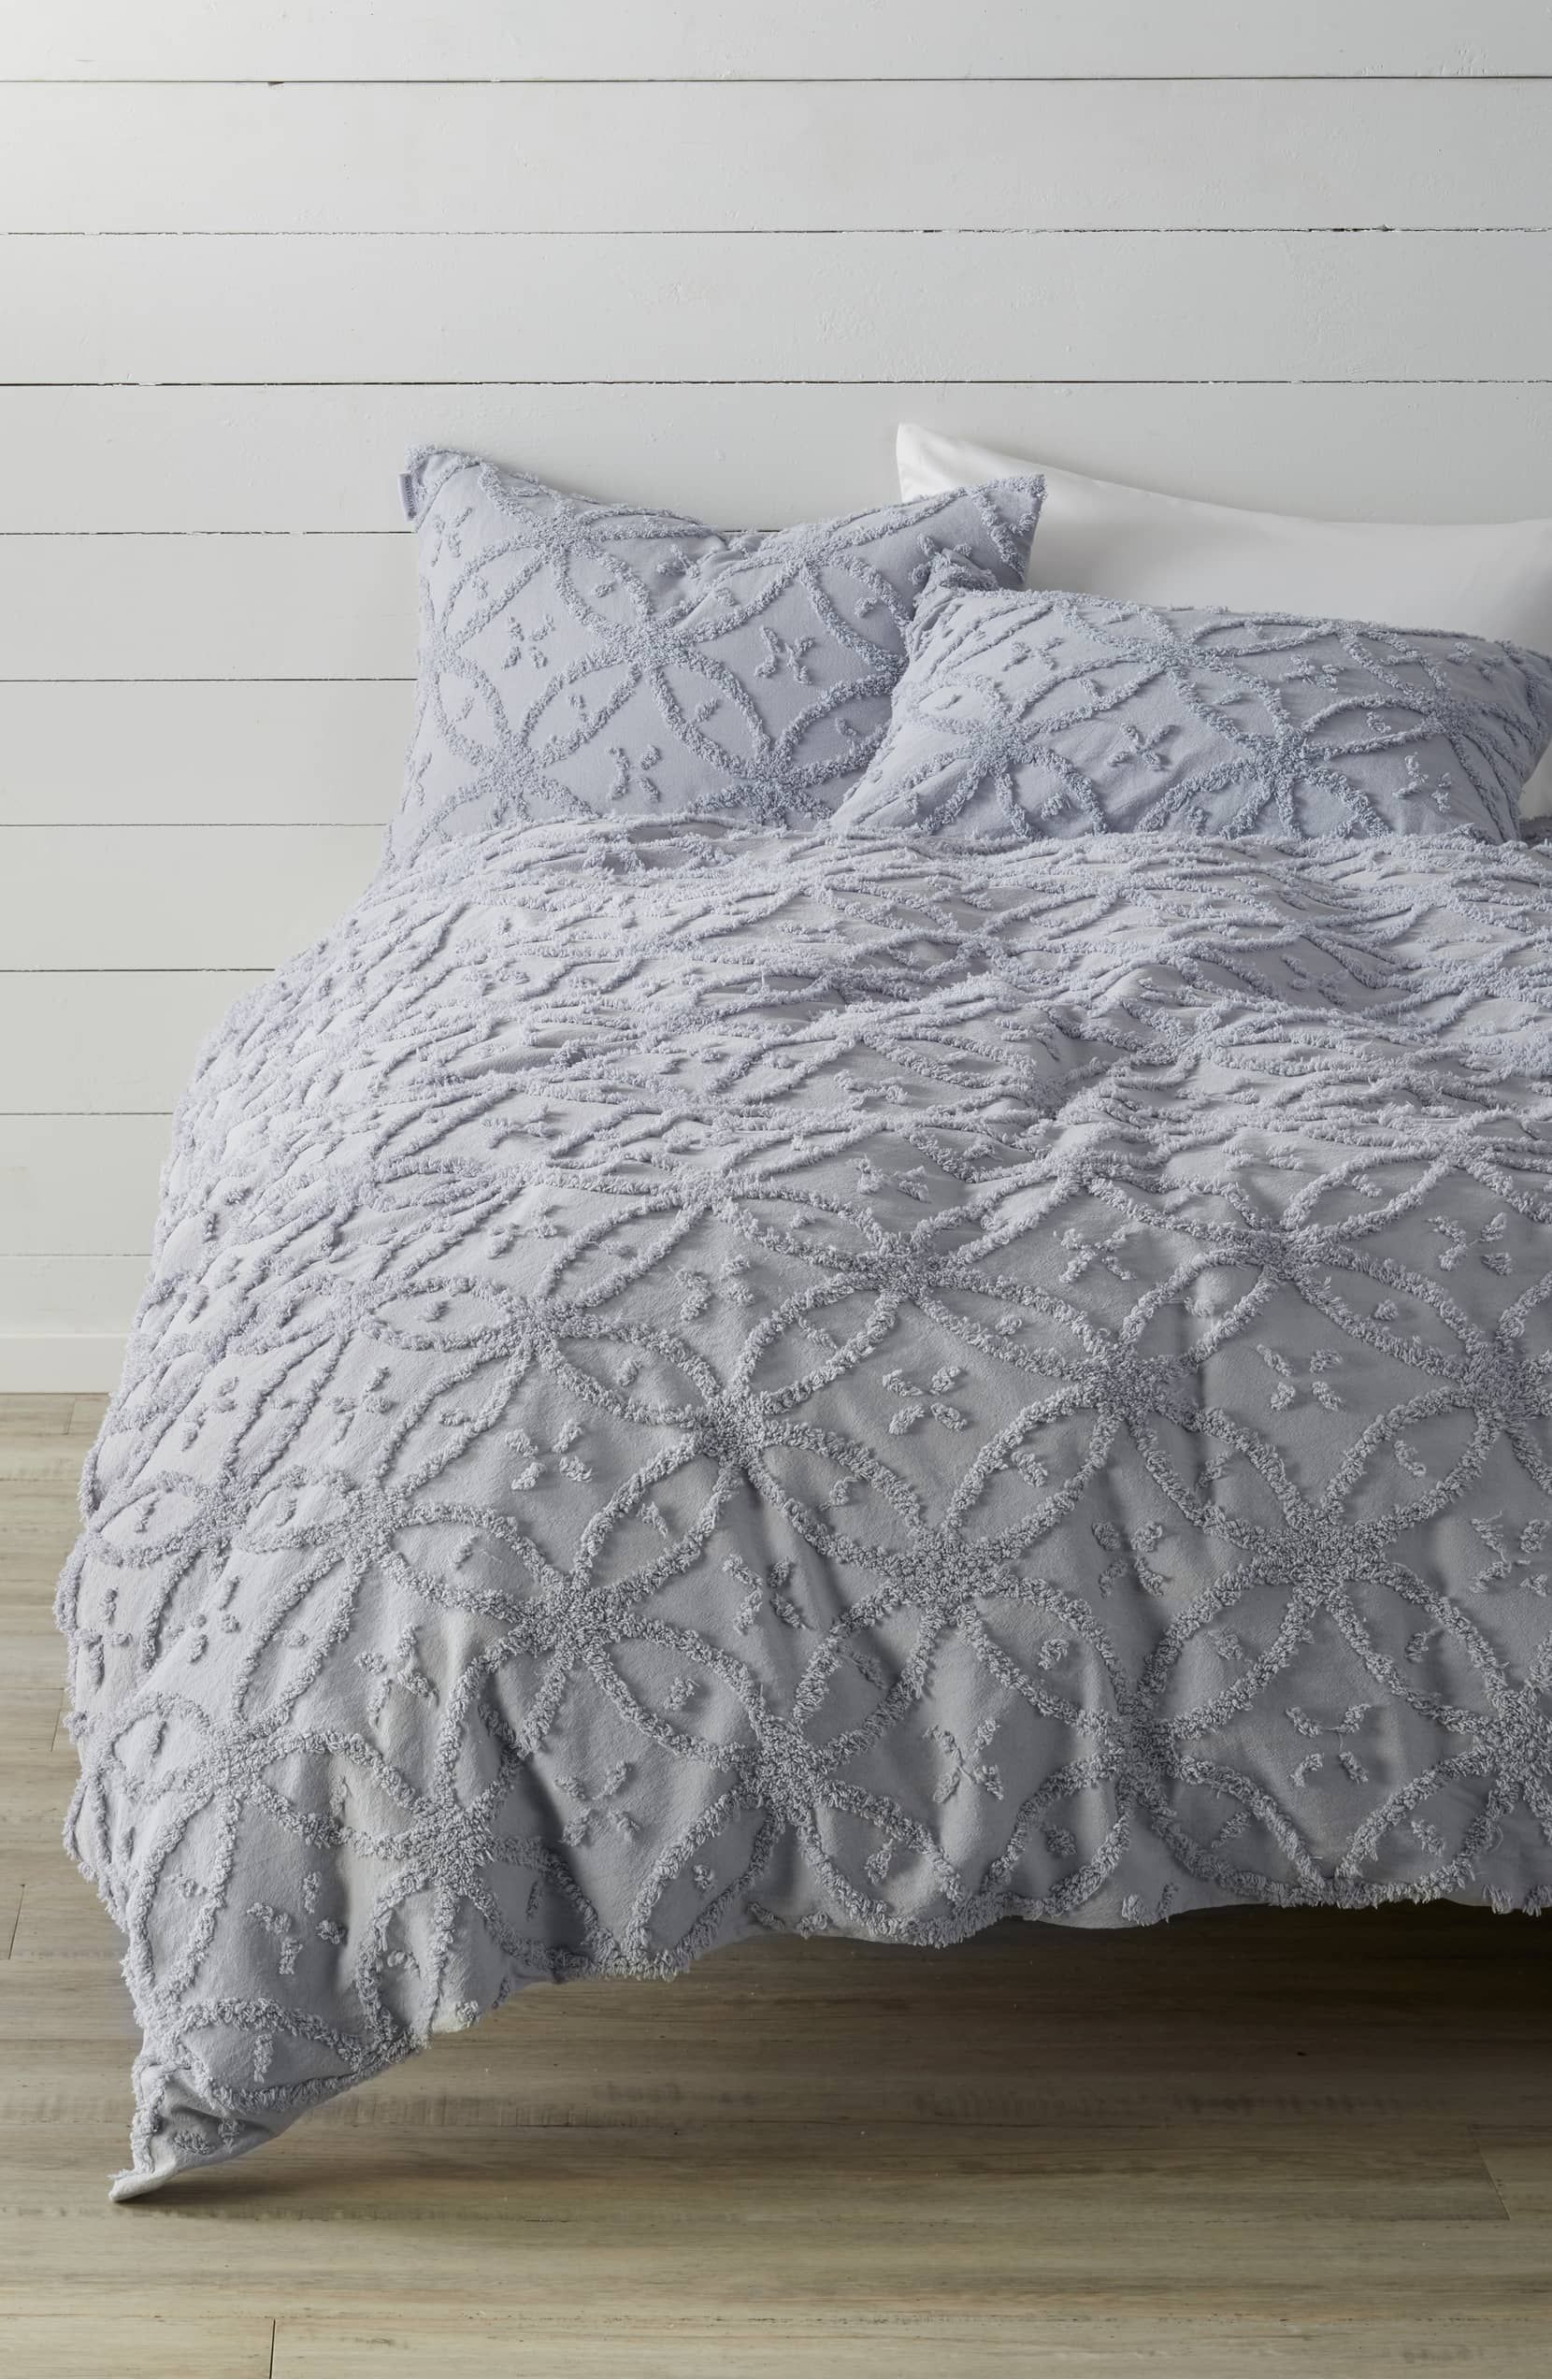 Minella Duvet Cover Main Color Periwinkle Blue Bed Linens